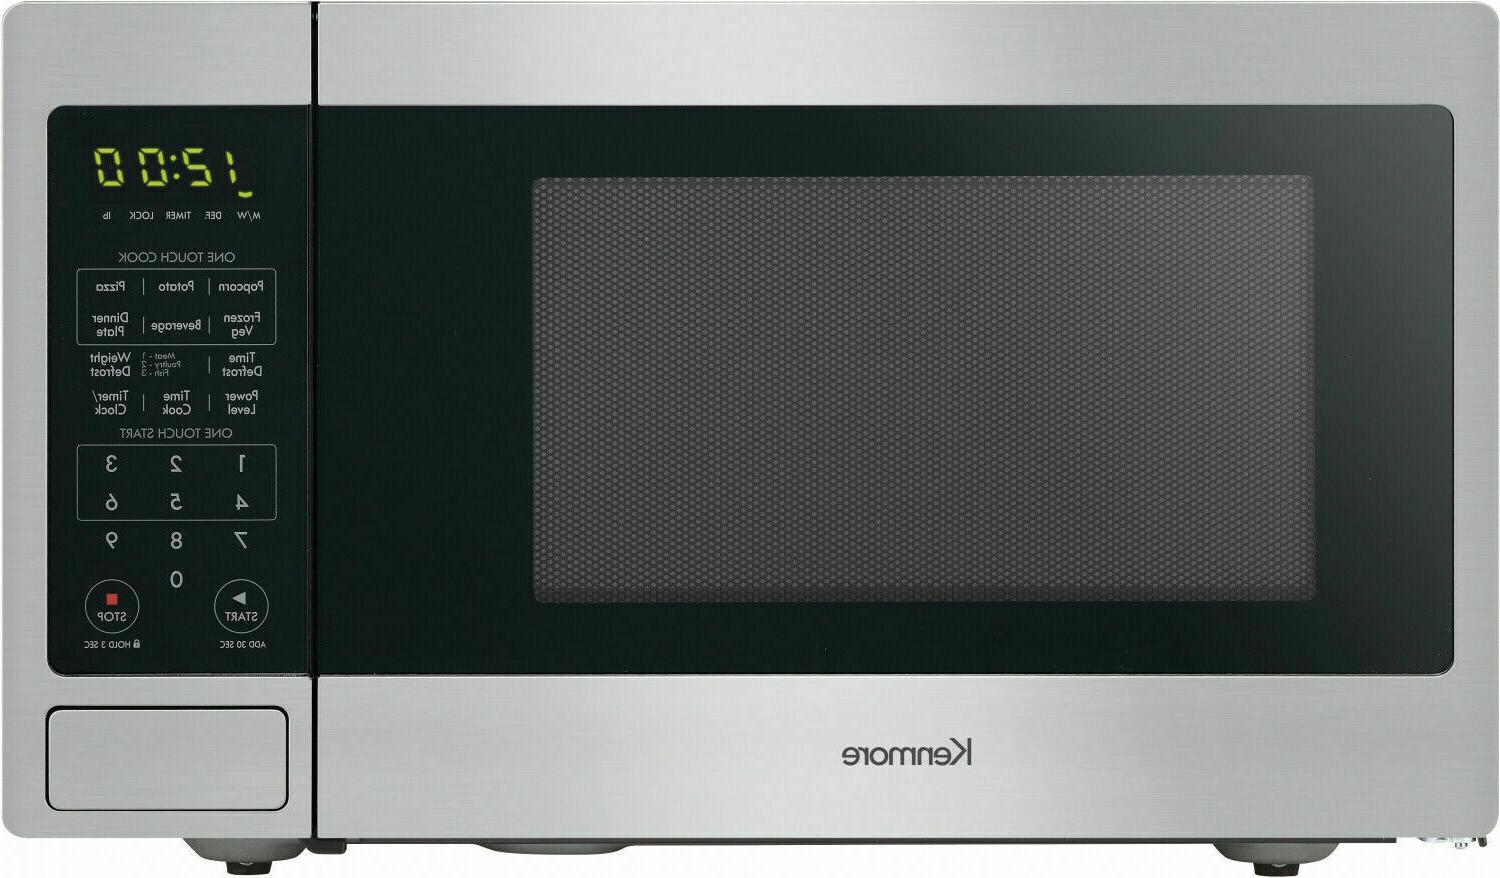 70913 countertop microwave stainless steel